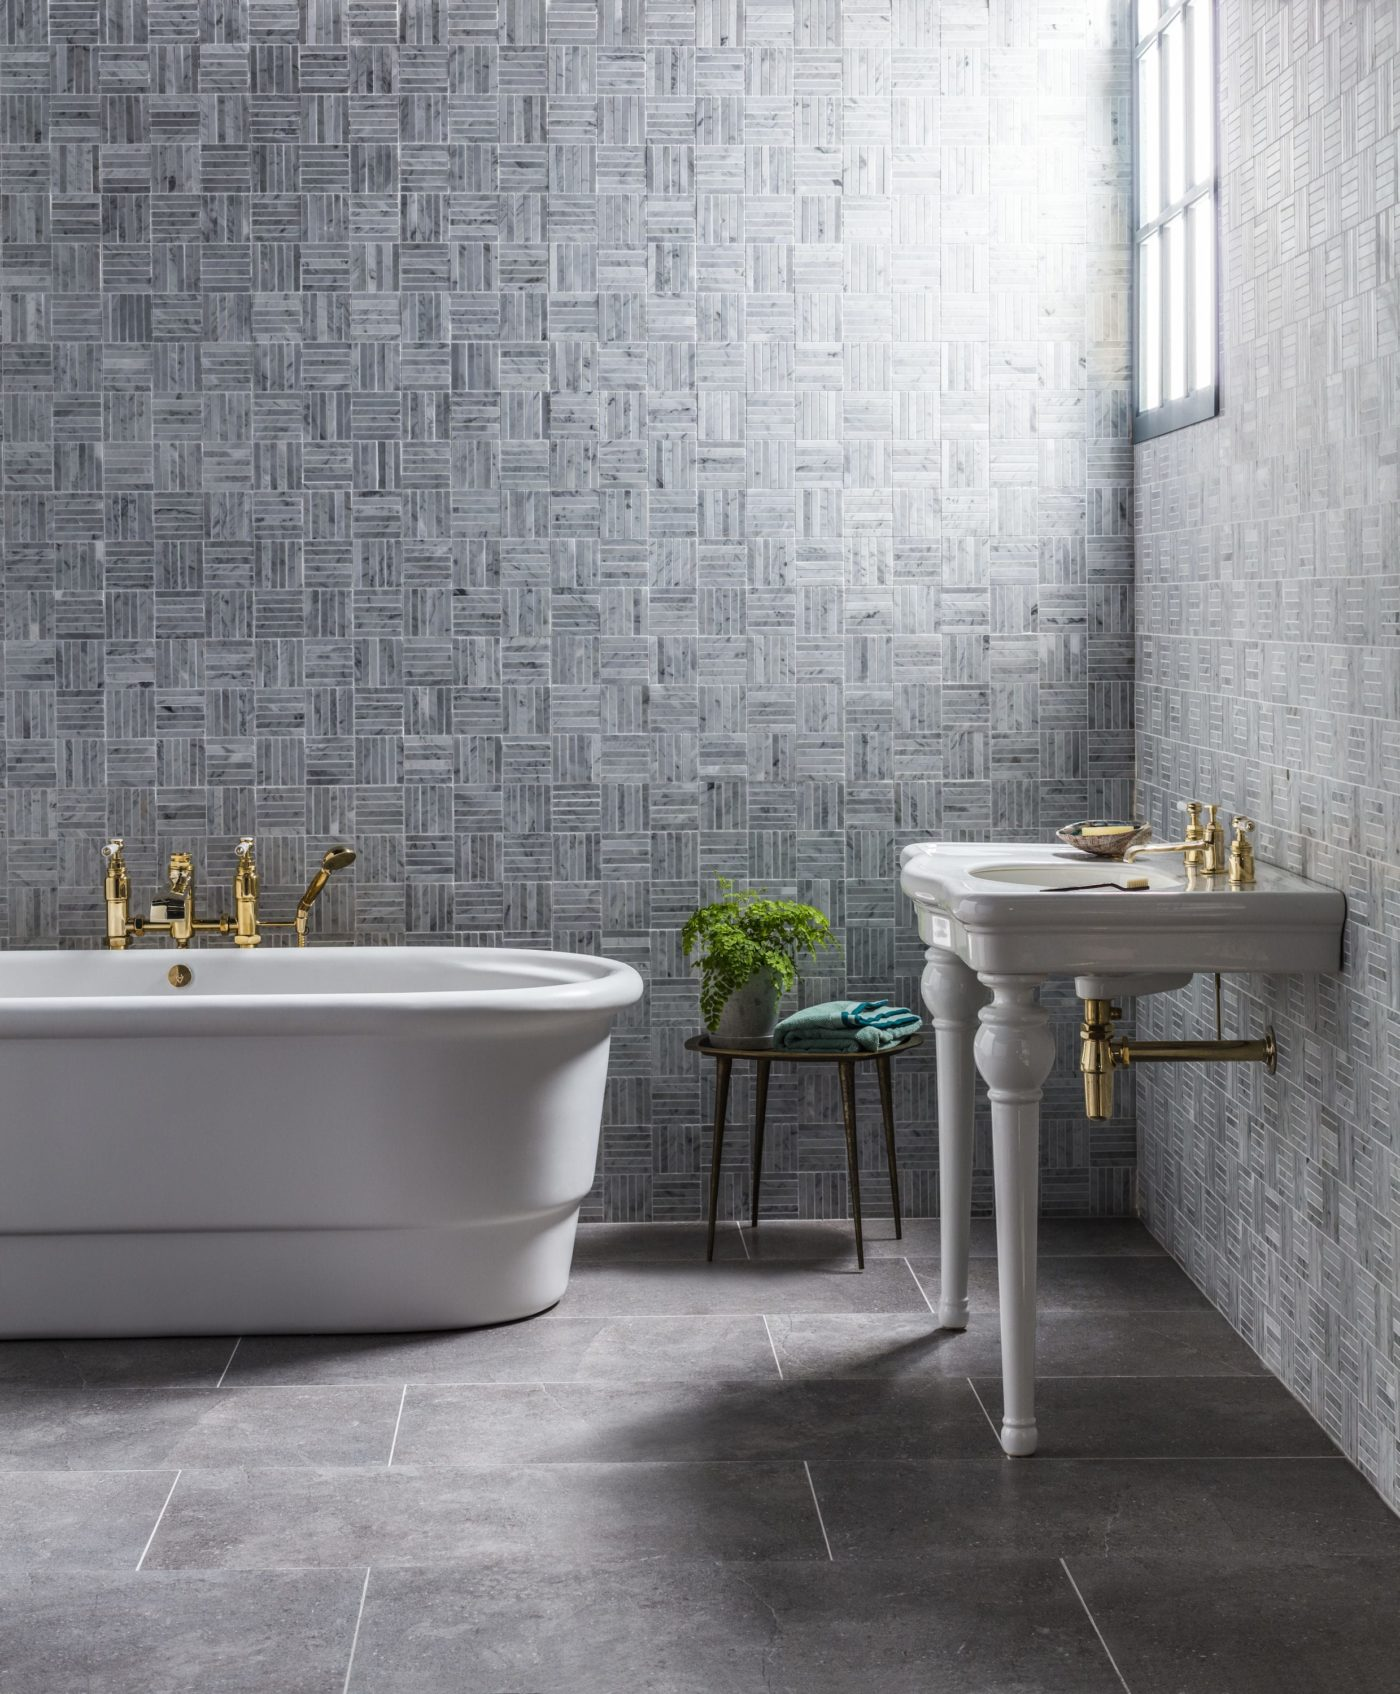 stone bathroom tiles. Mimica Blenheim Blue Porcelain Stone Bathroom Tiles S